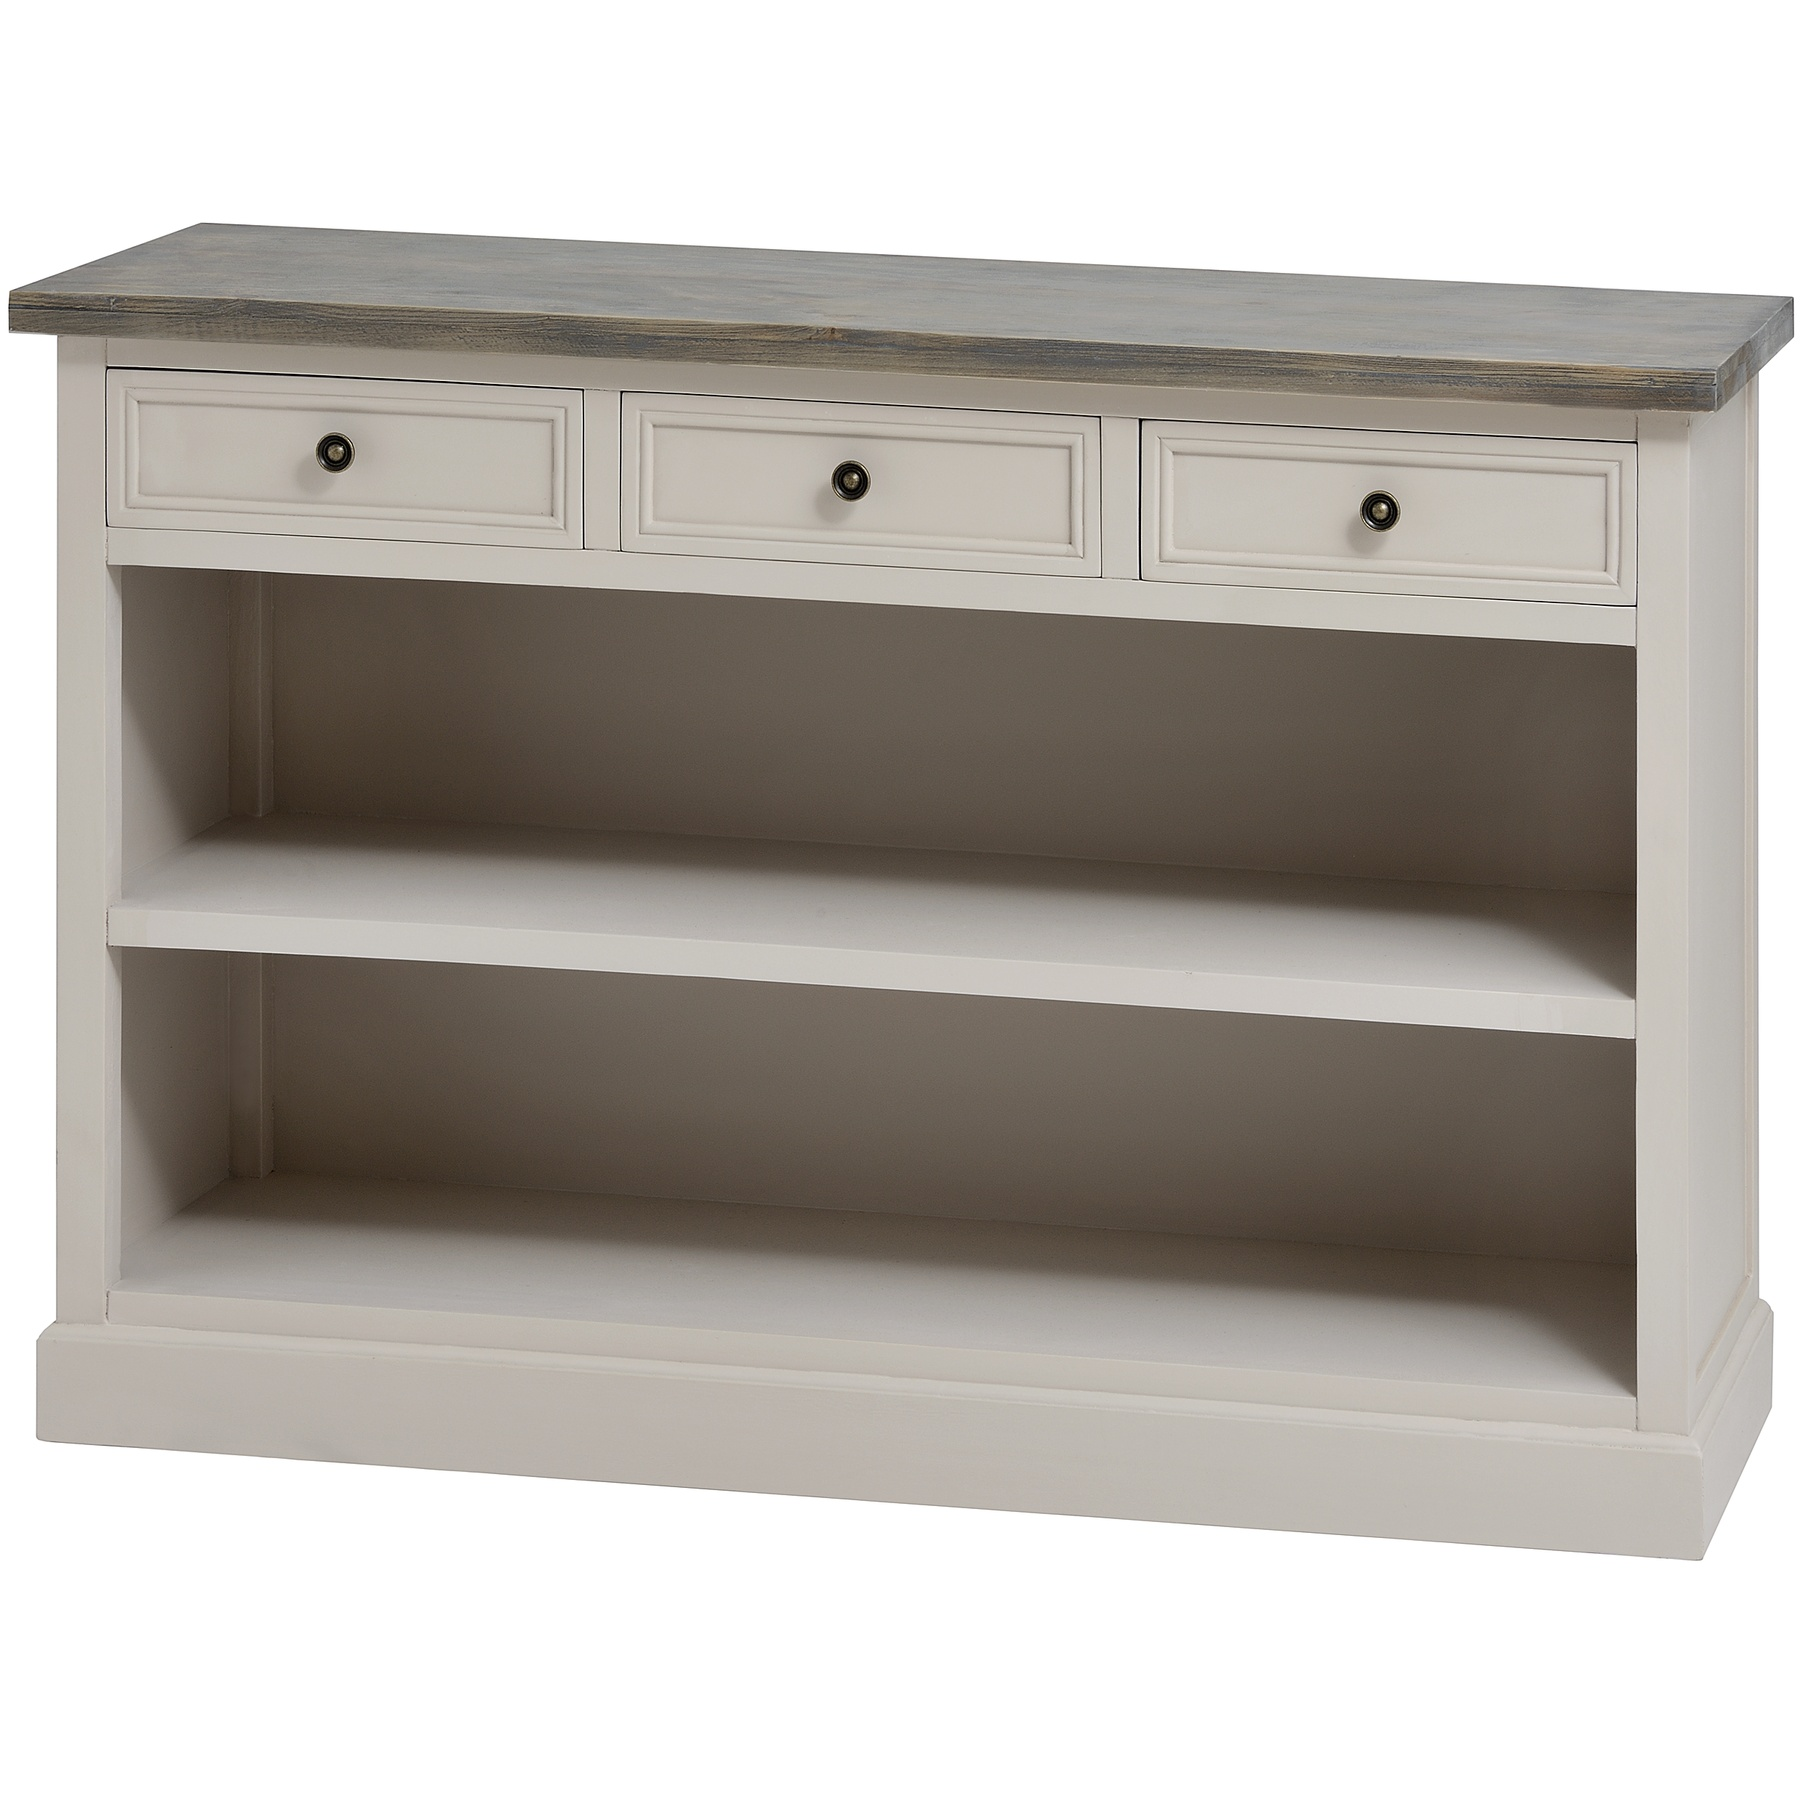 Bath range: Neutral three drawer unit with shelves